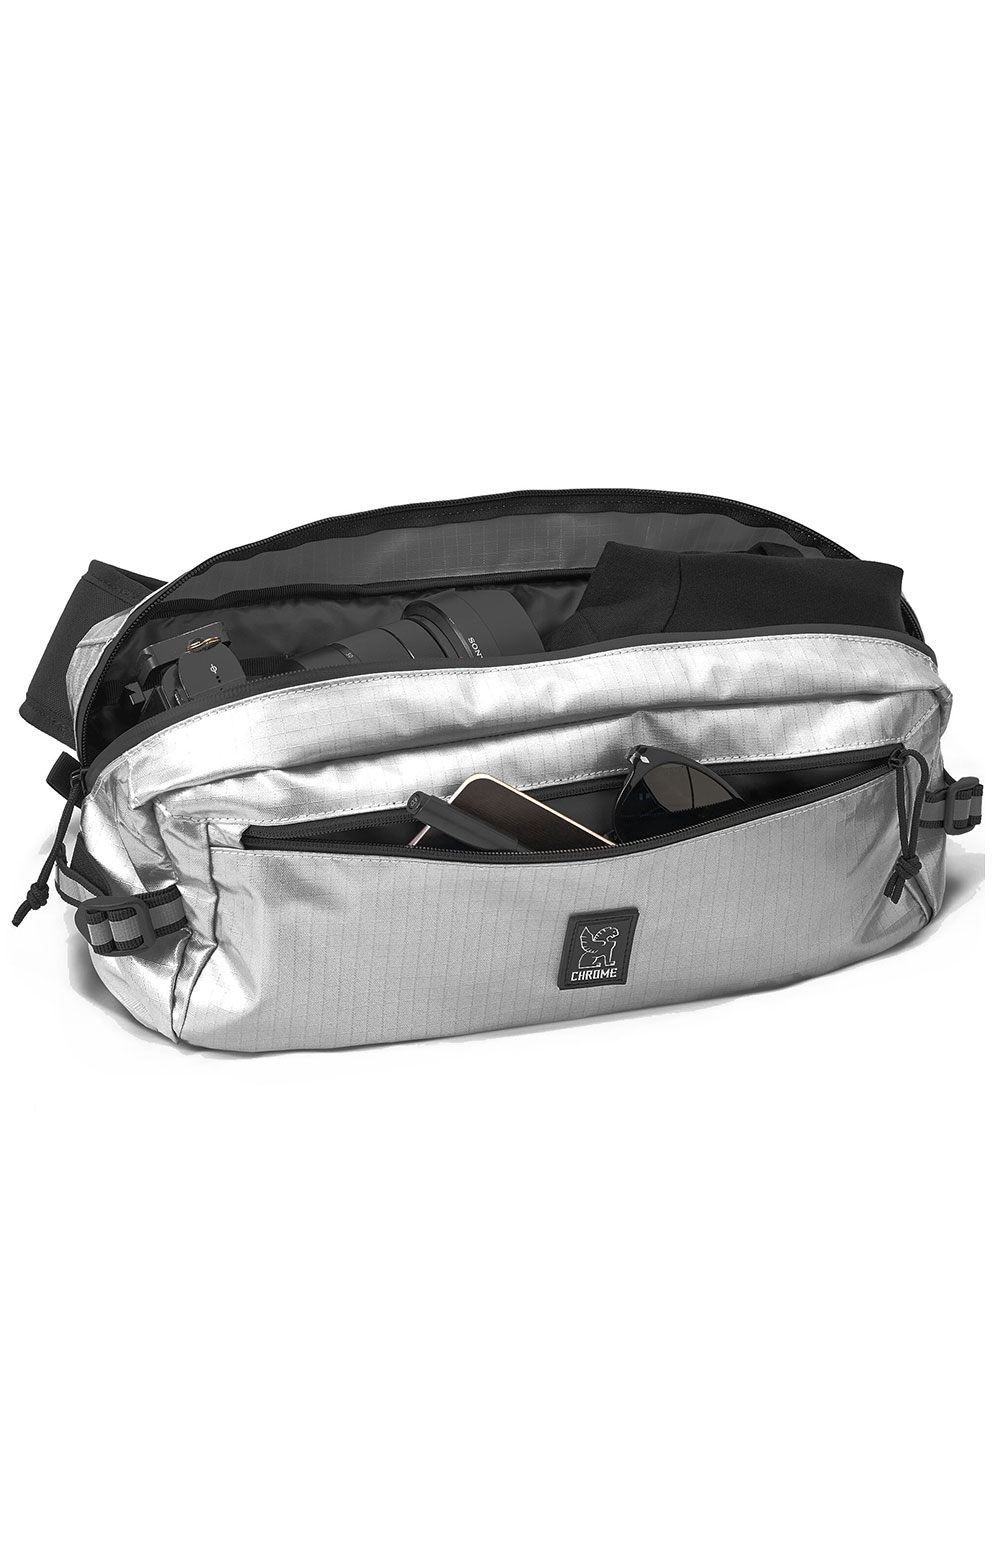 Kadet Nylon Bag - Chrome/Aluminum 3